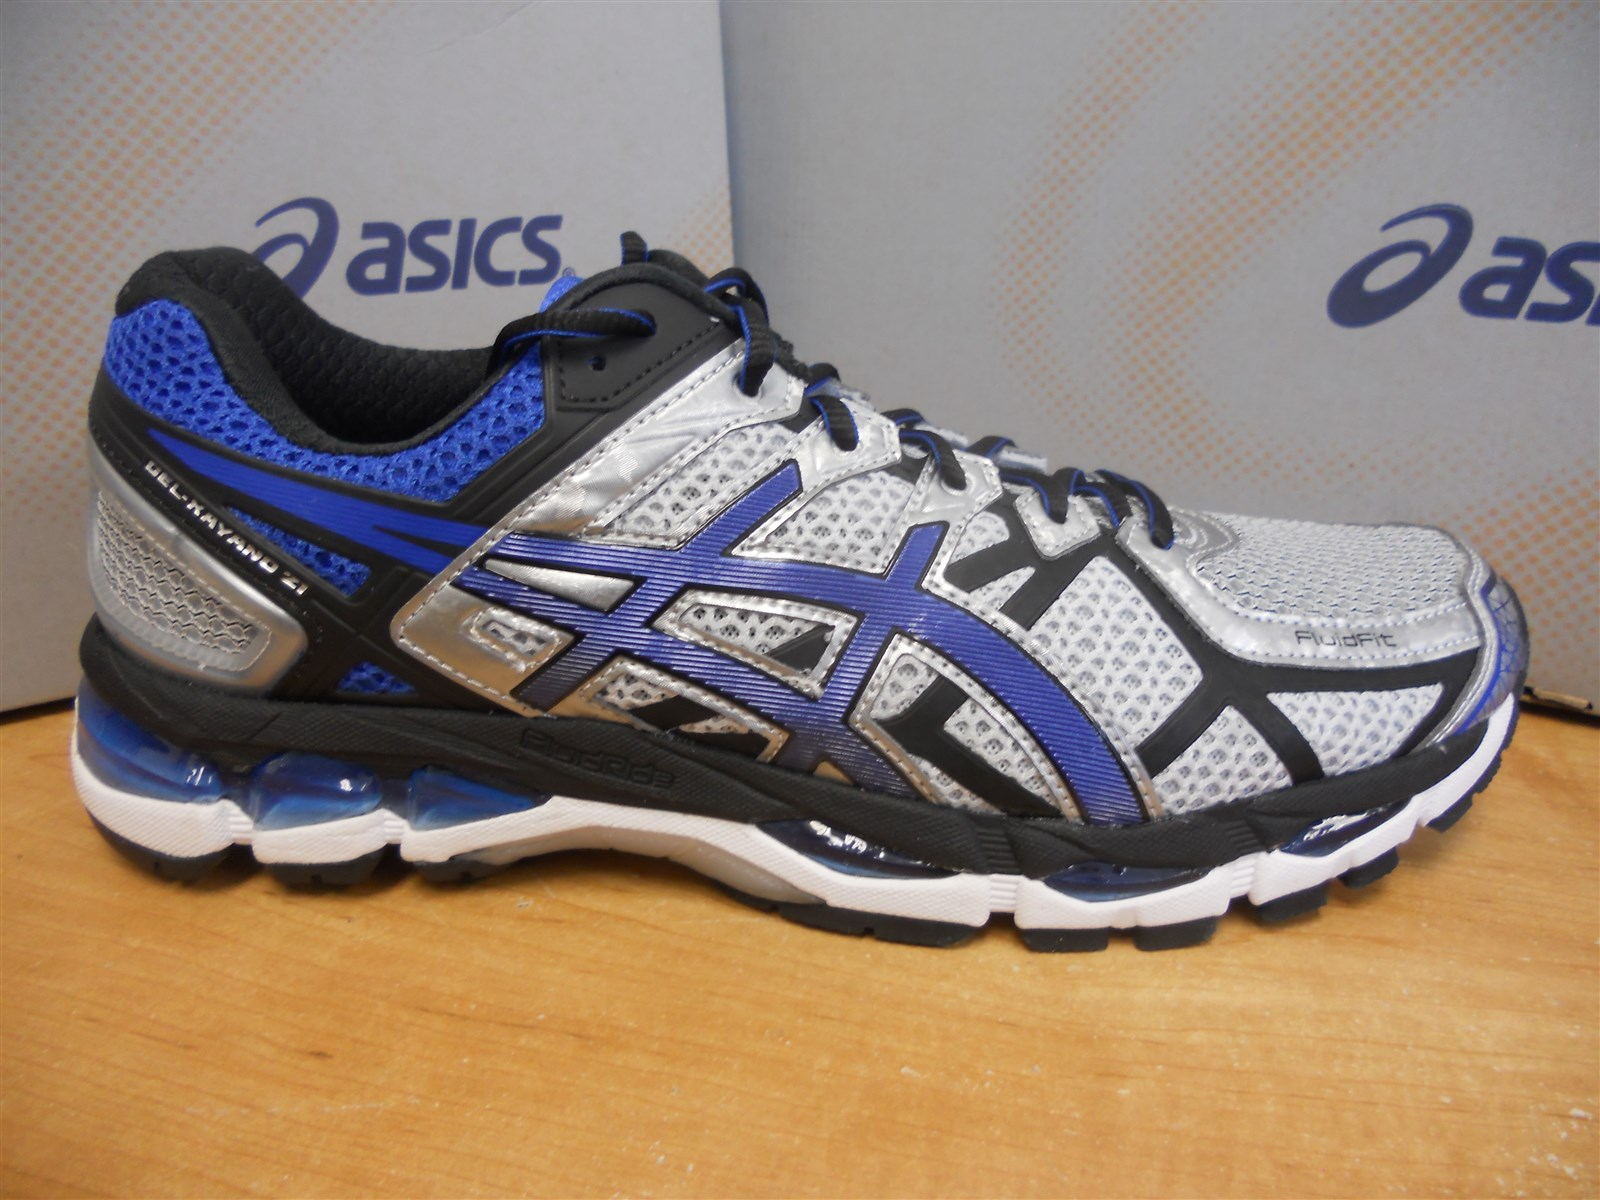 new asics gel kayano 21 running shoes mens size 11 5 ebay. Black Bedroom Furniture Sets. Home Design Ideas